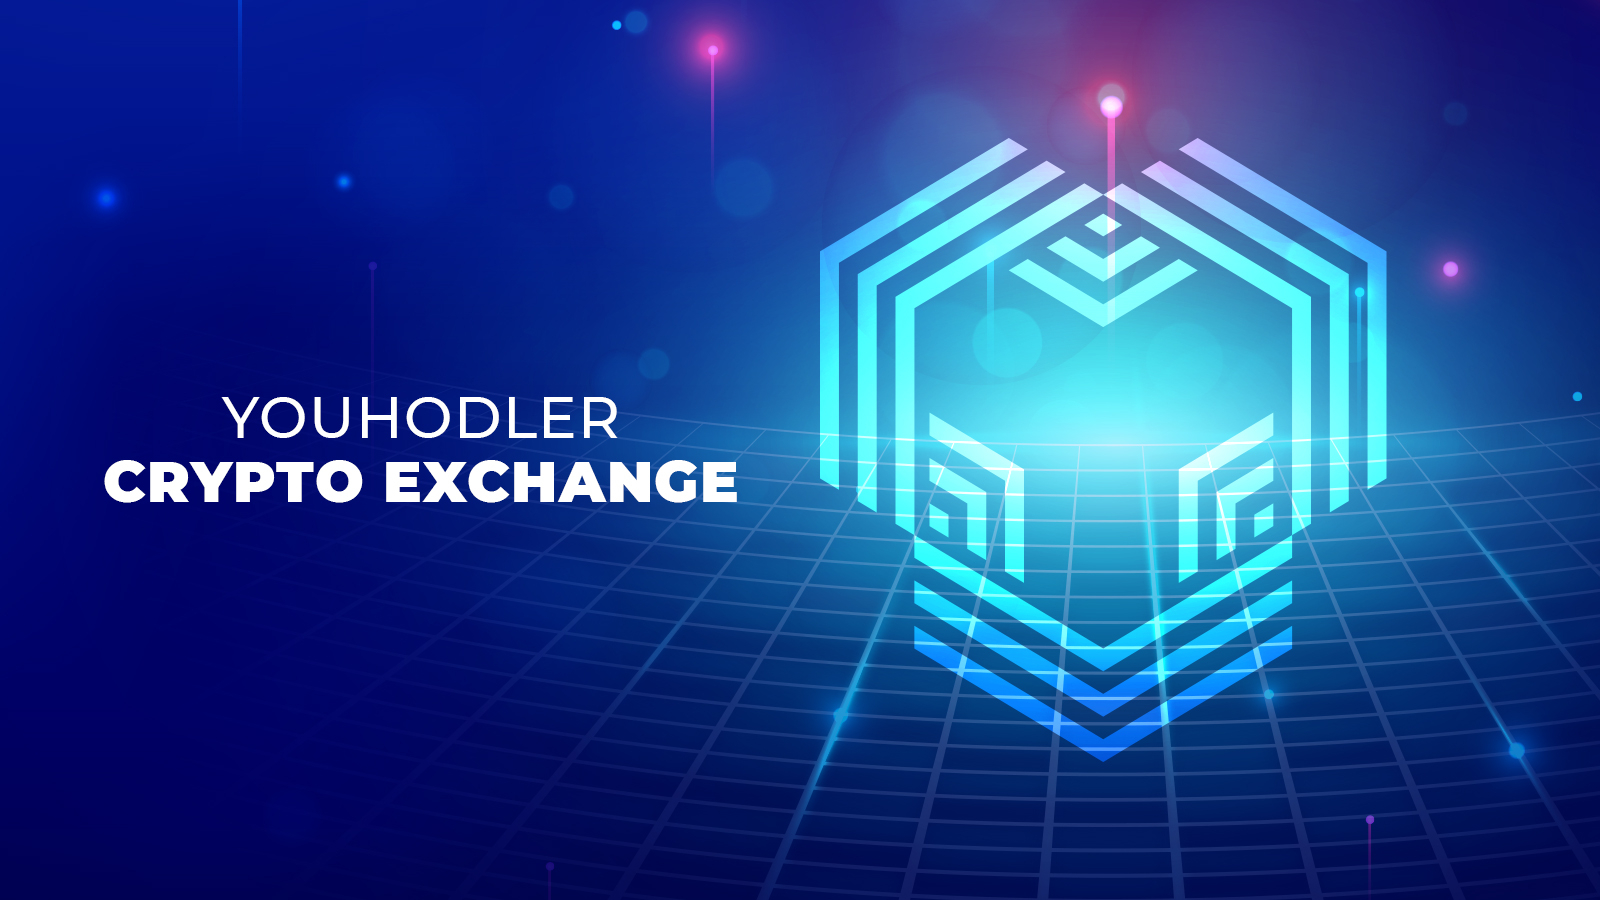 Texting saying YouHodler crypto exchange in a graphic image